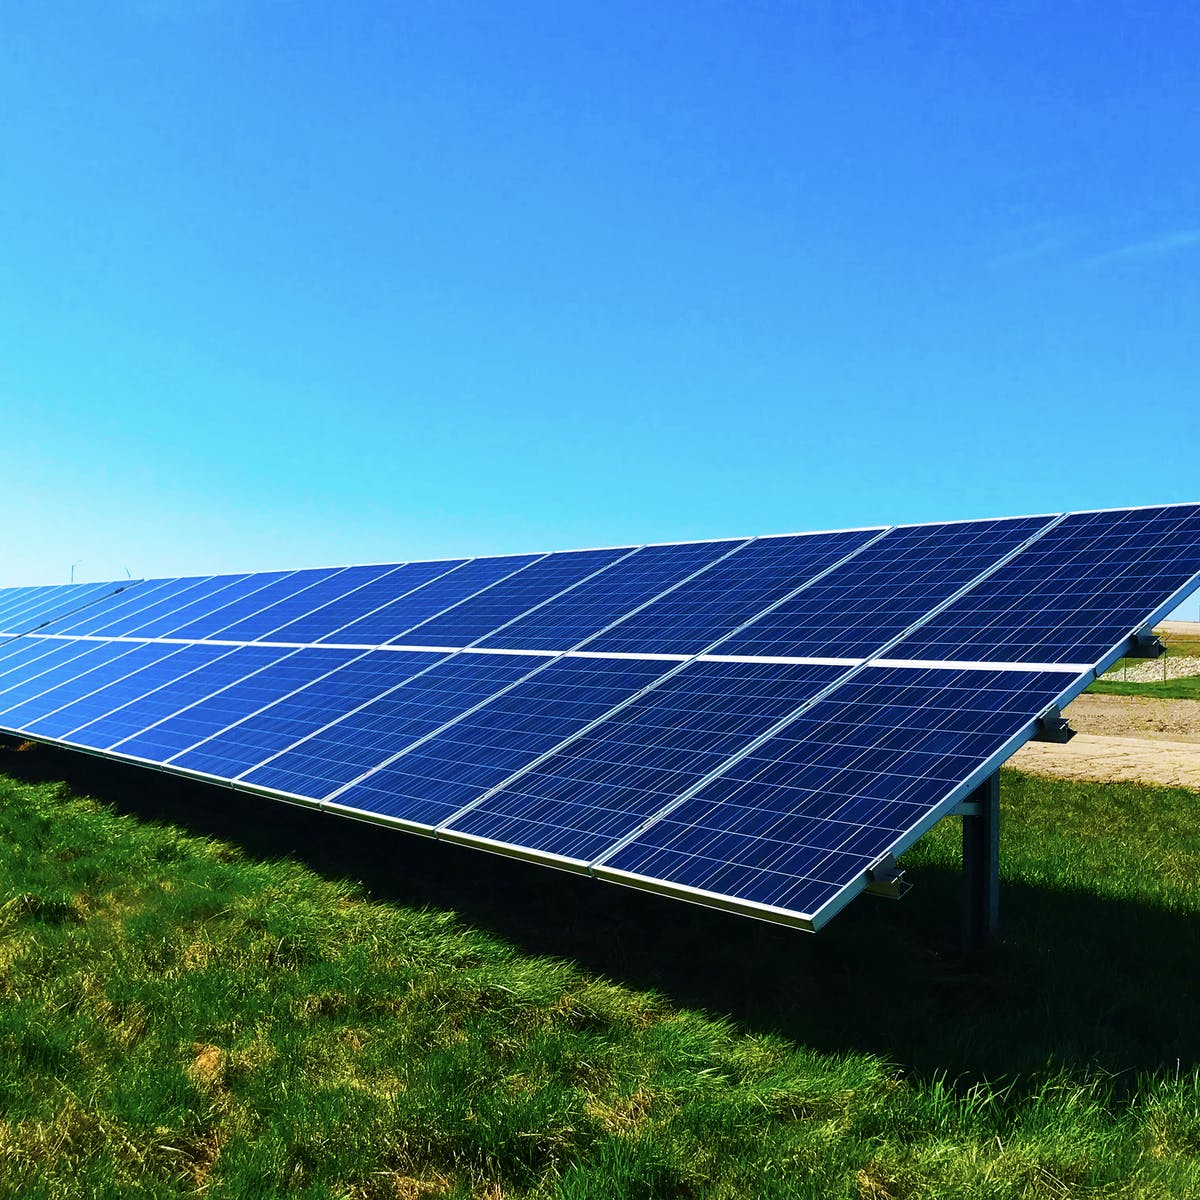 Solar Energy: 'Astonishing' Rise Over Last 10 Years Reveals a Bright Future